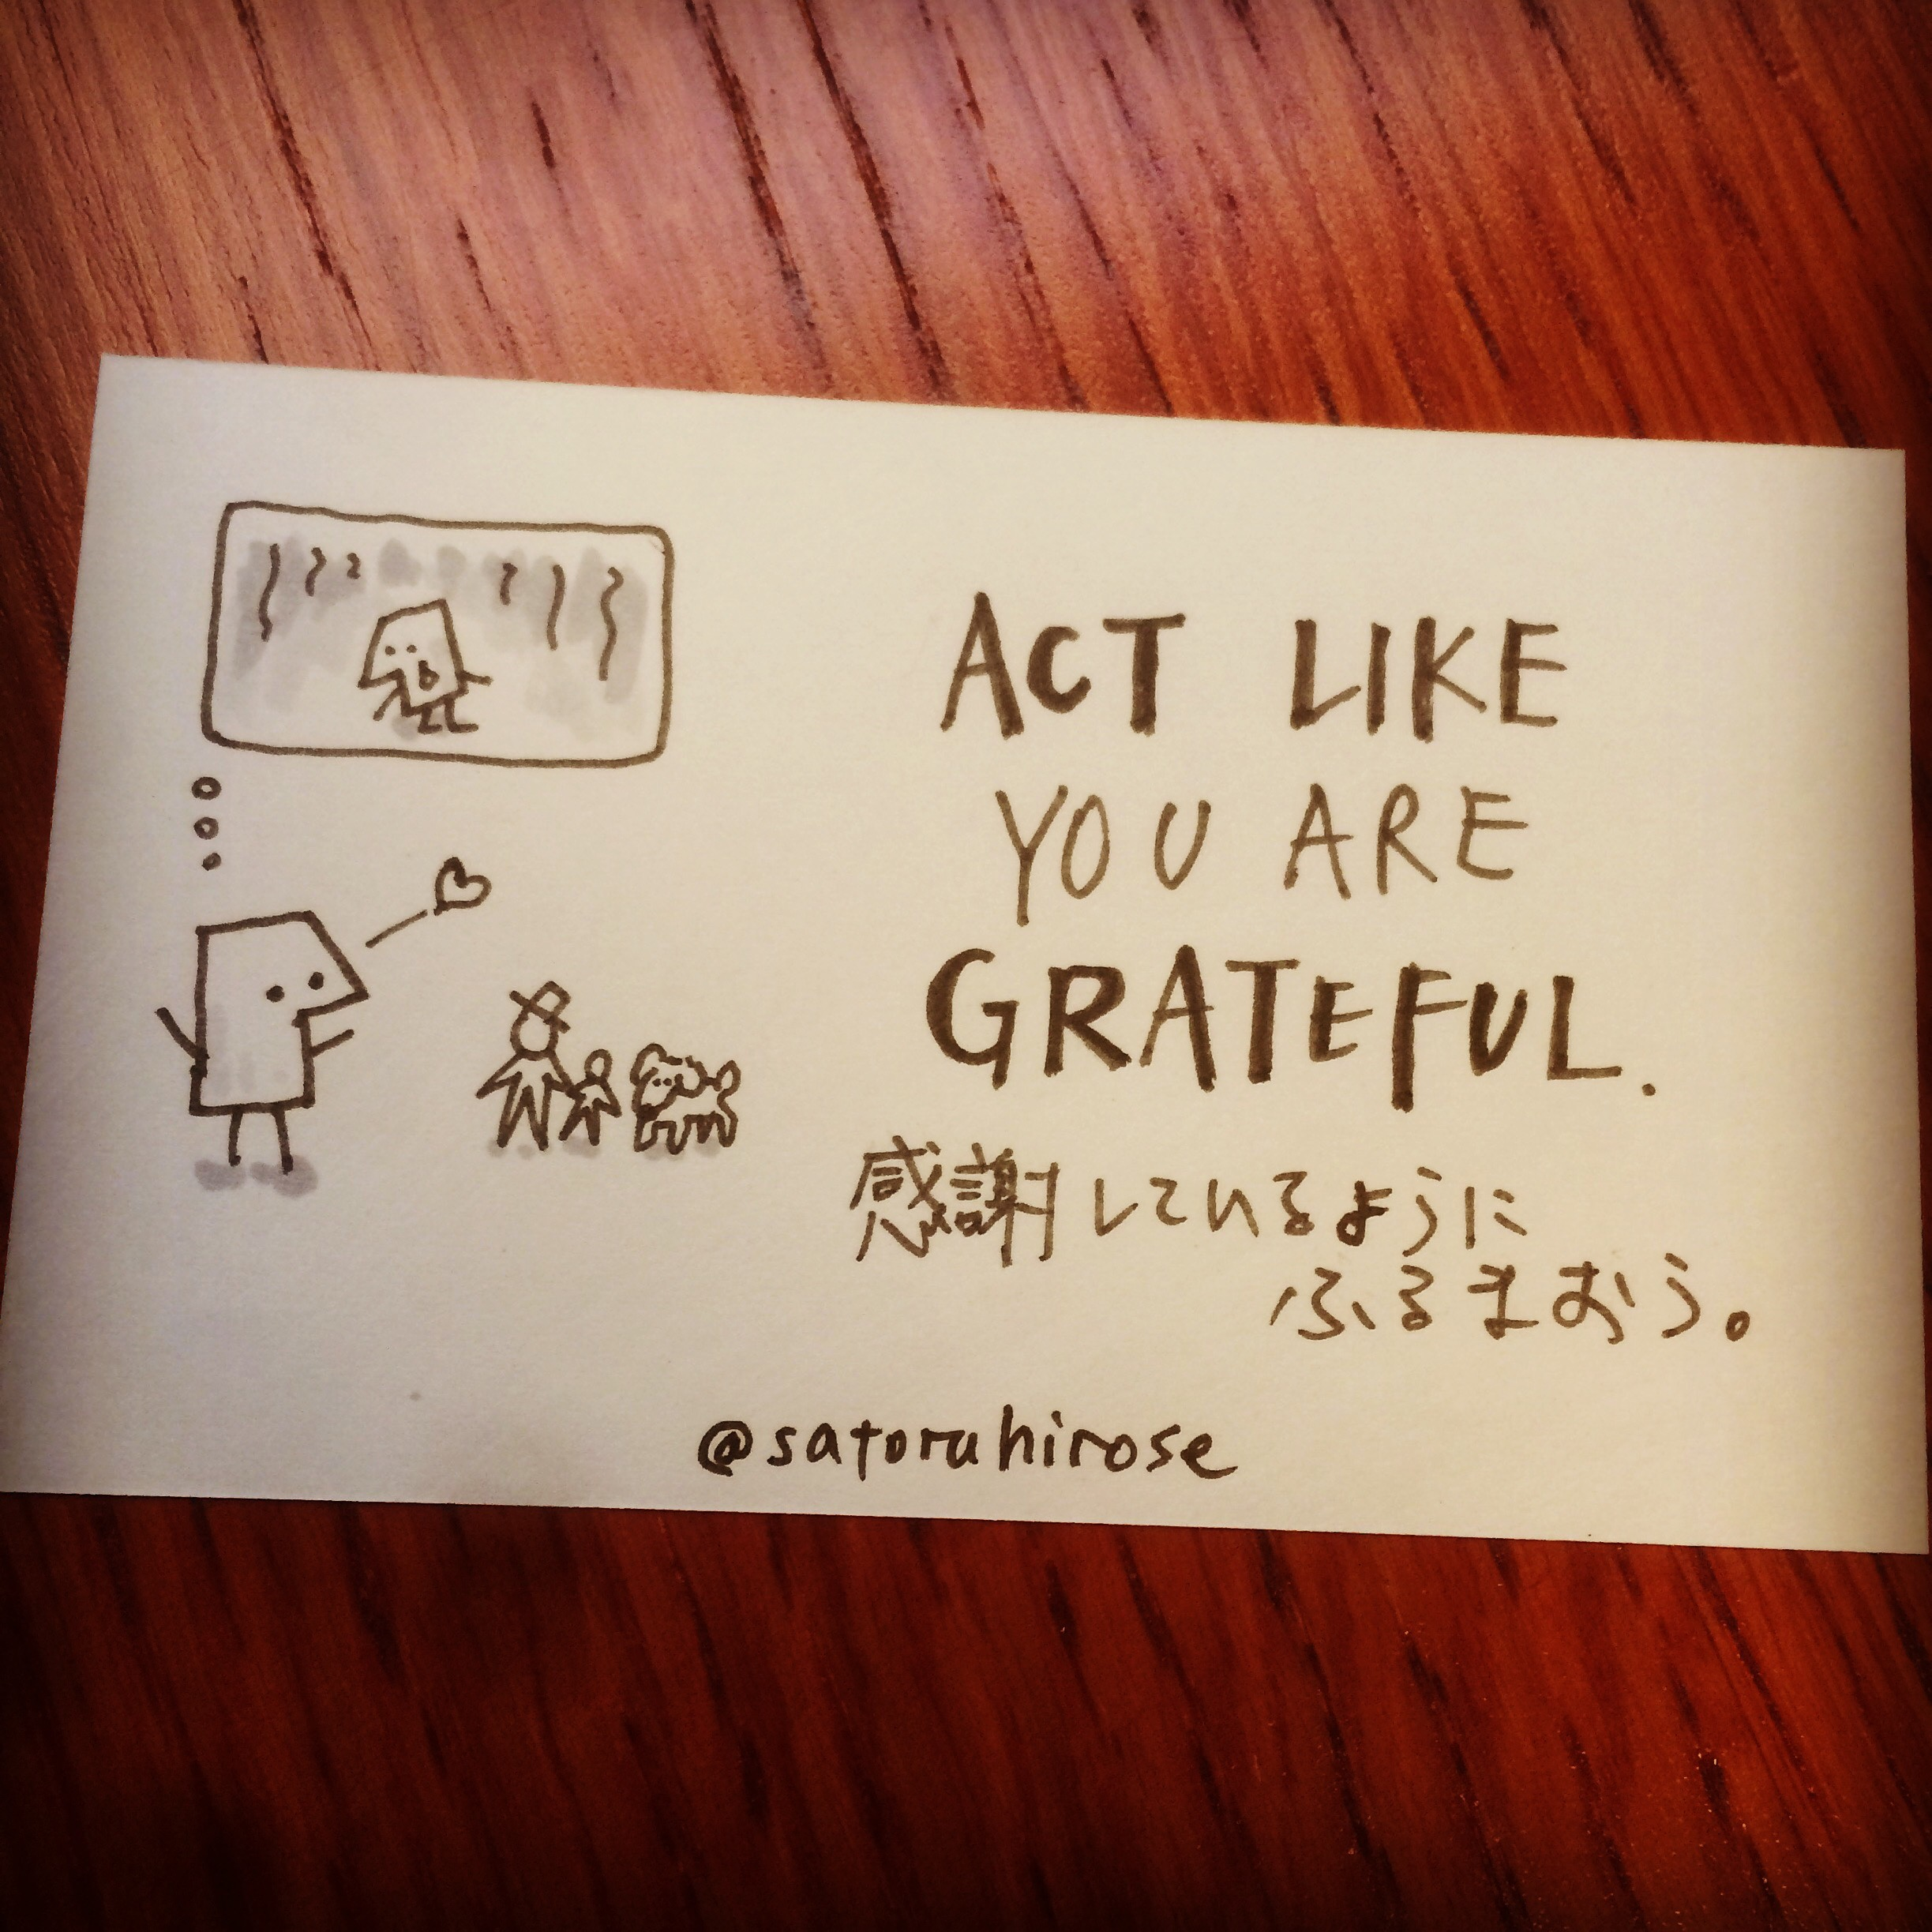 Act like you are grateful.